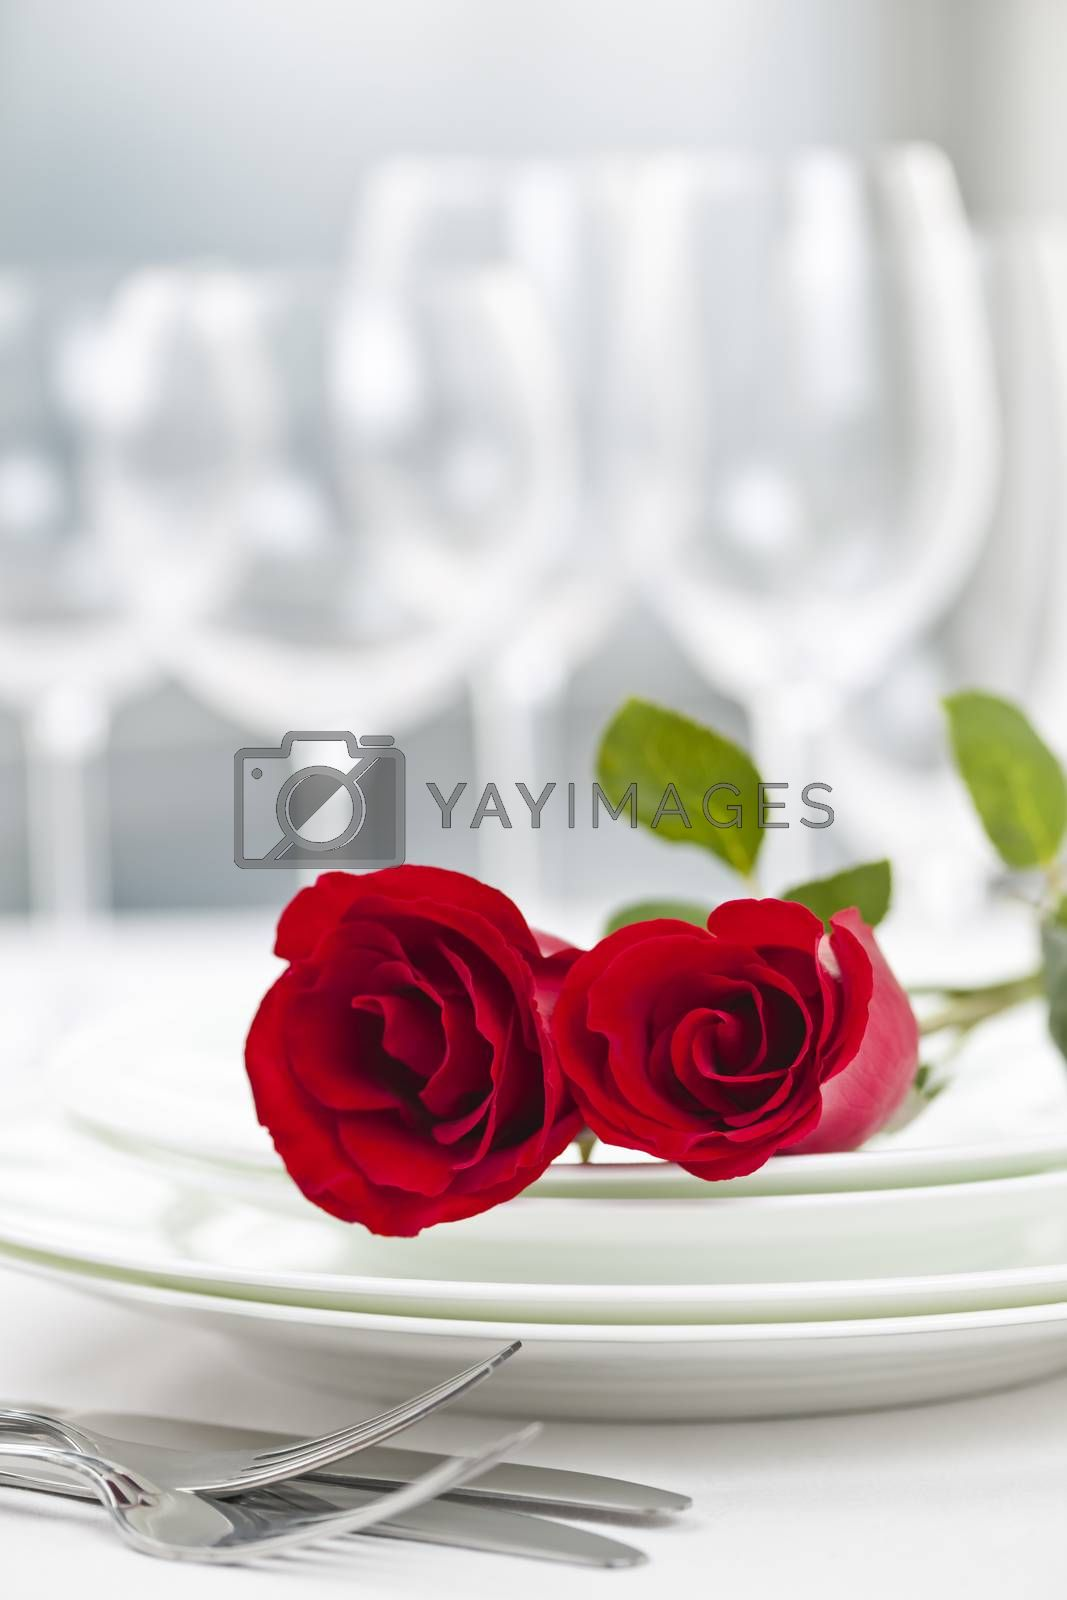 Romantic restaurant table setting for two with roses plates and cutlery